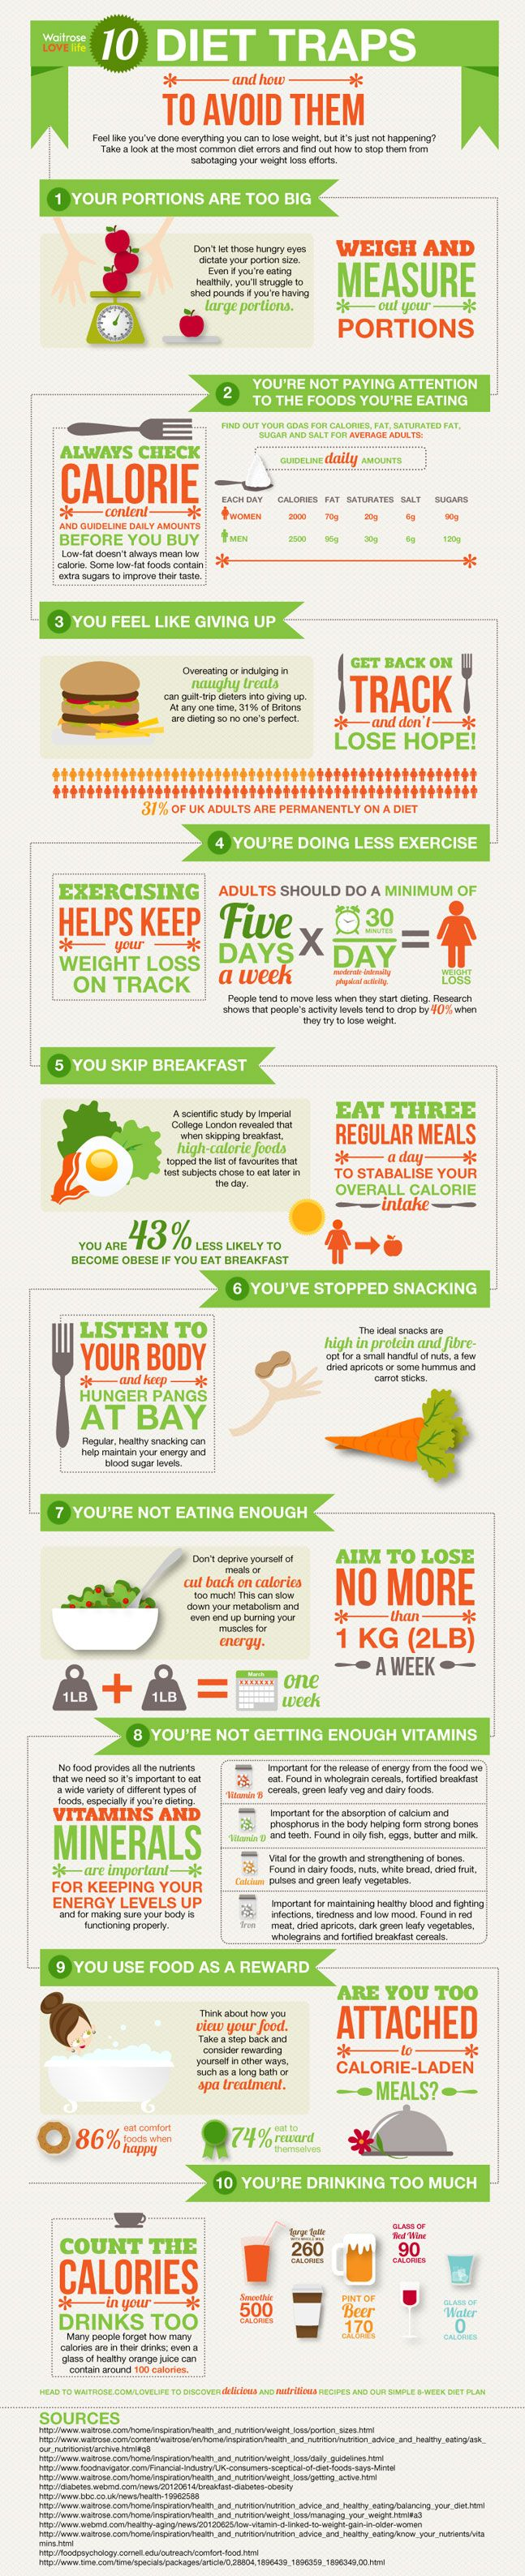 Ten Common Diet Traps and How to Avoid Them